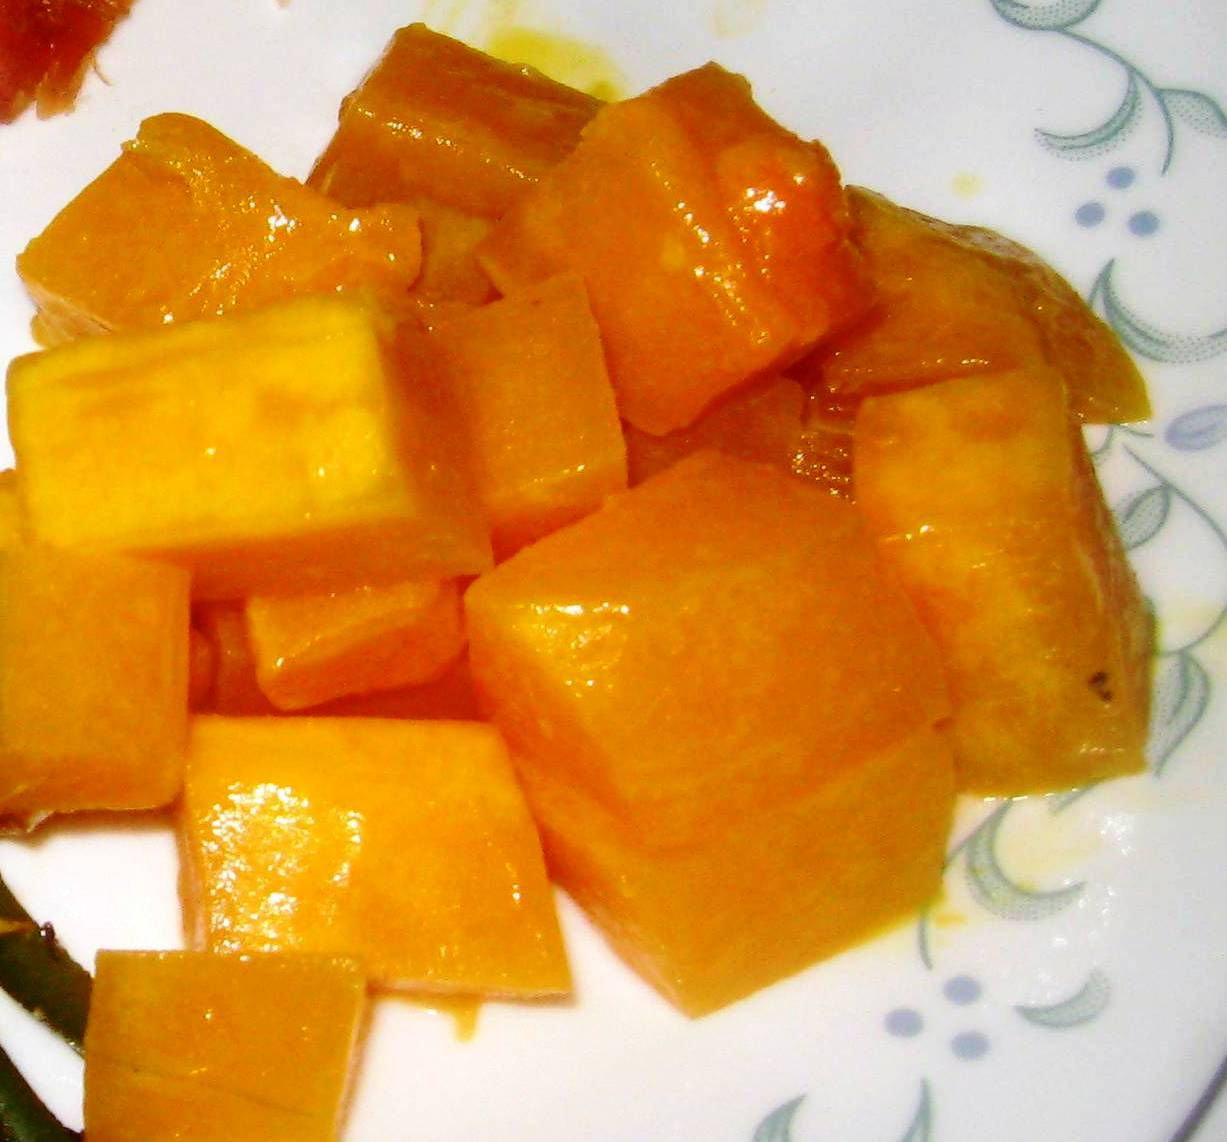 ... squash candied butternut squash of candied winter squash squash food